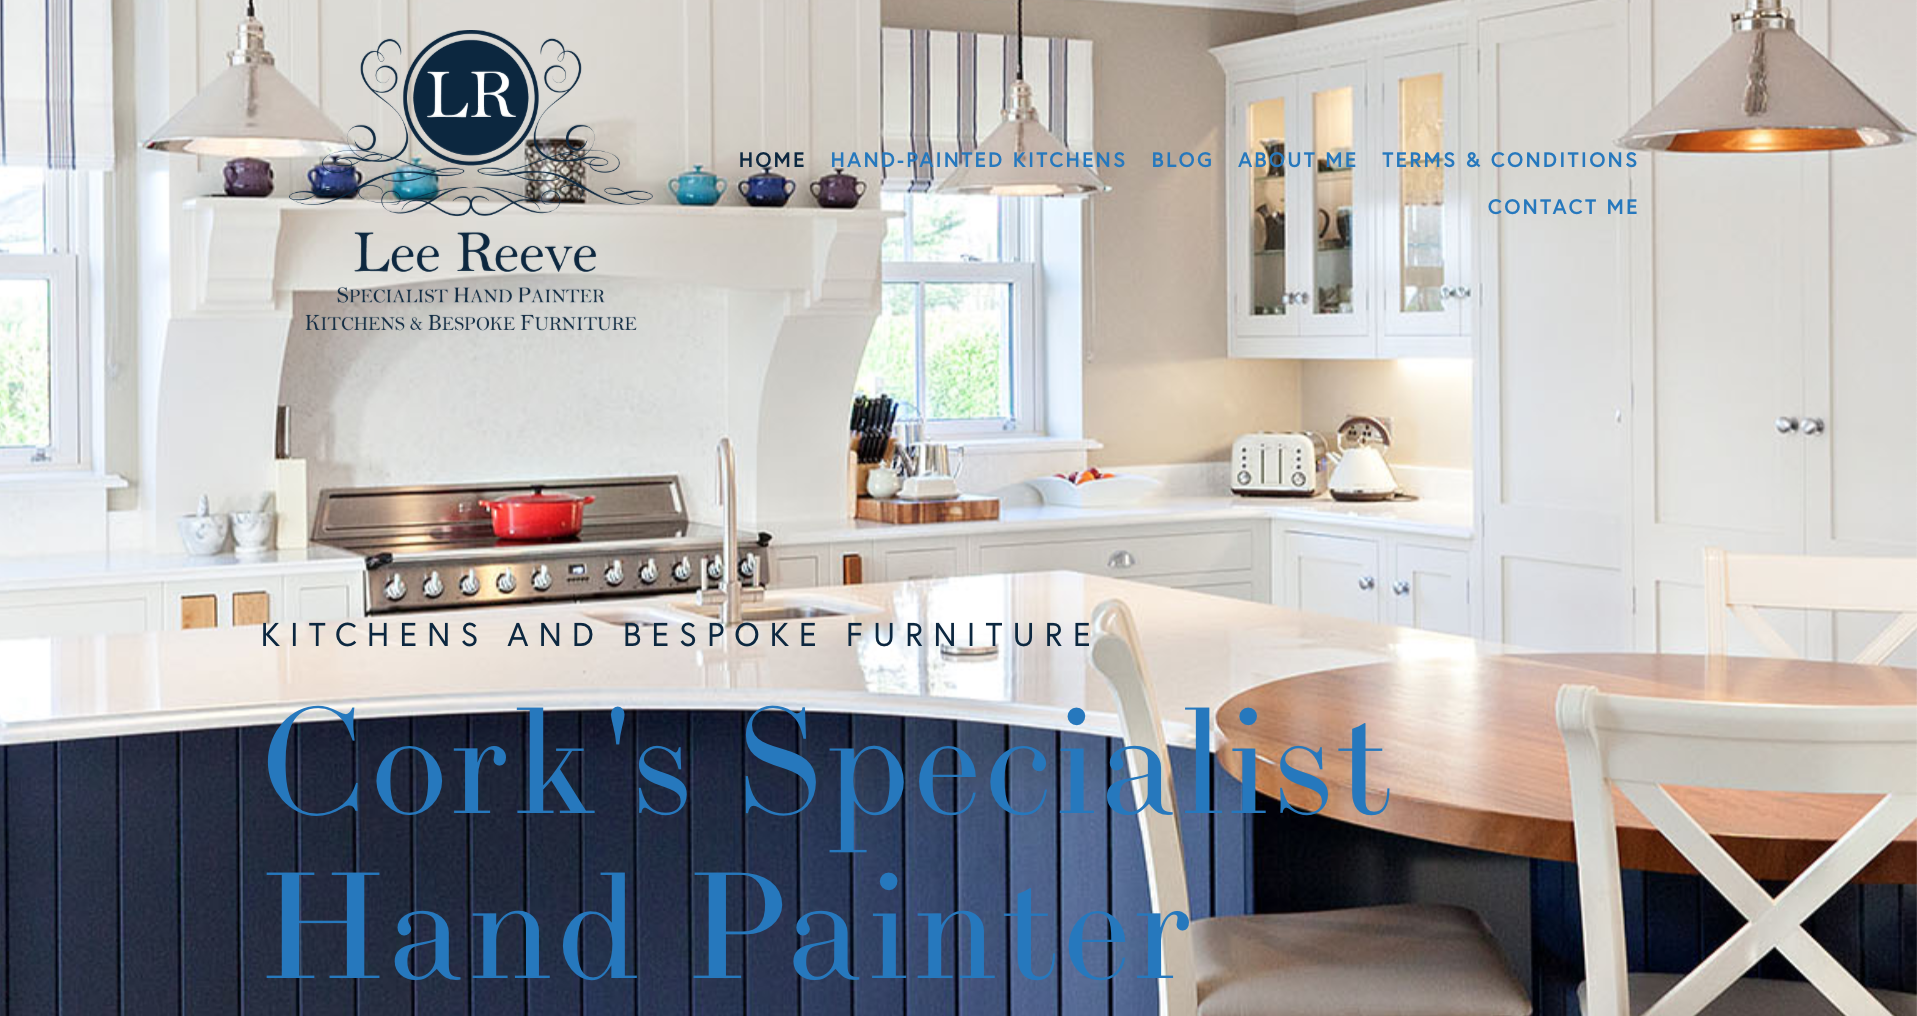 Lee Reeve—Specialist Hand Painter of Kitchens and Bespoke Furniture